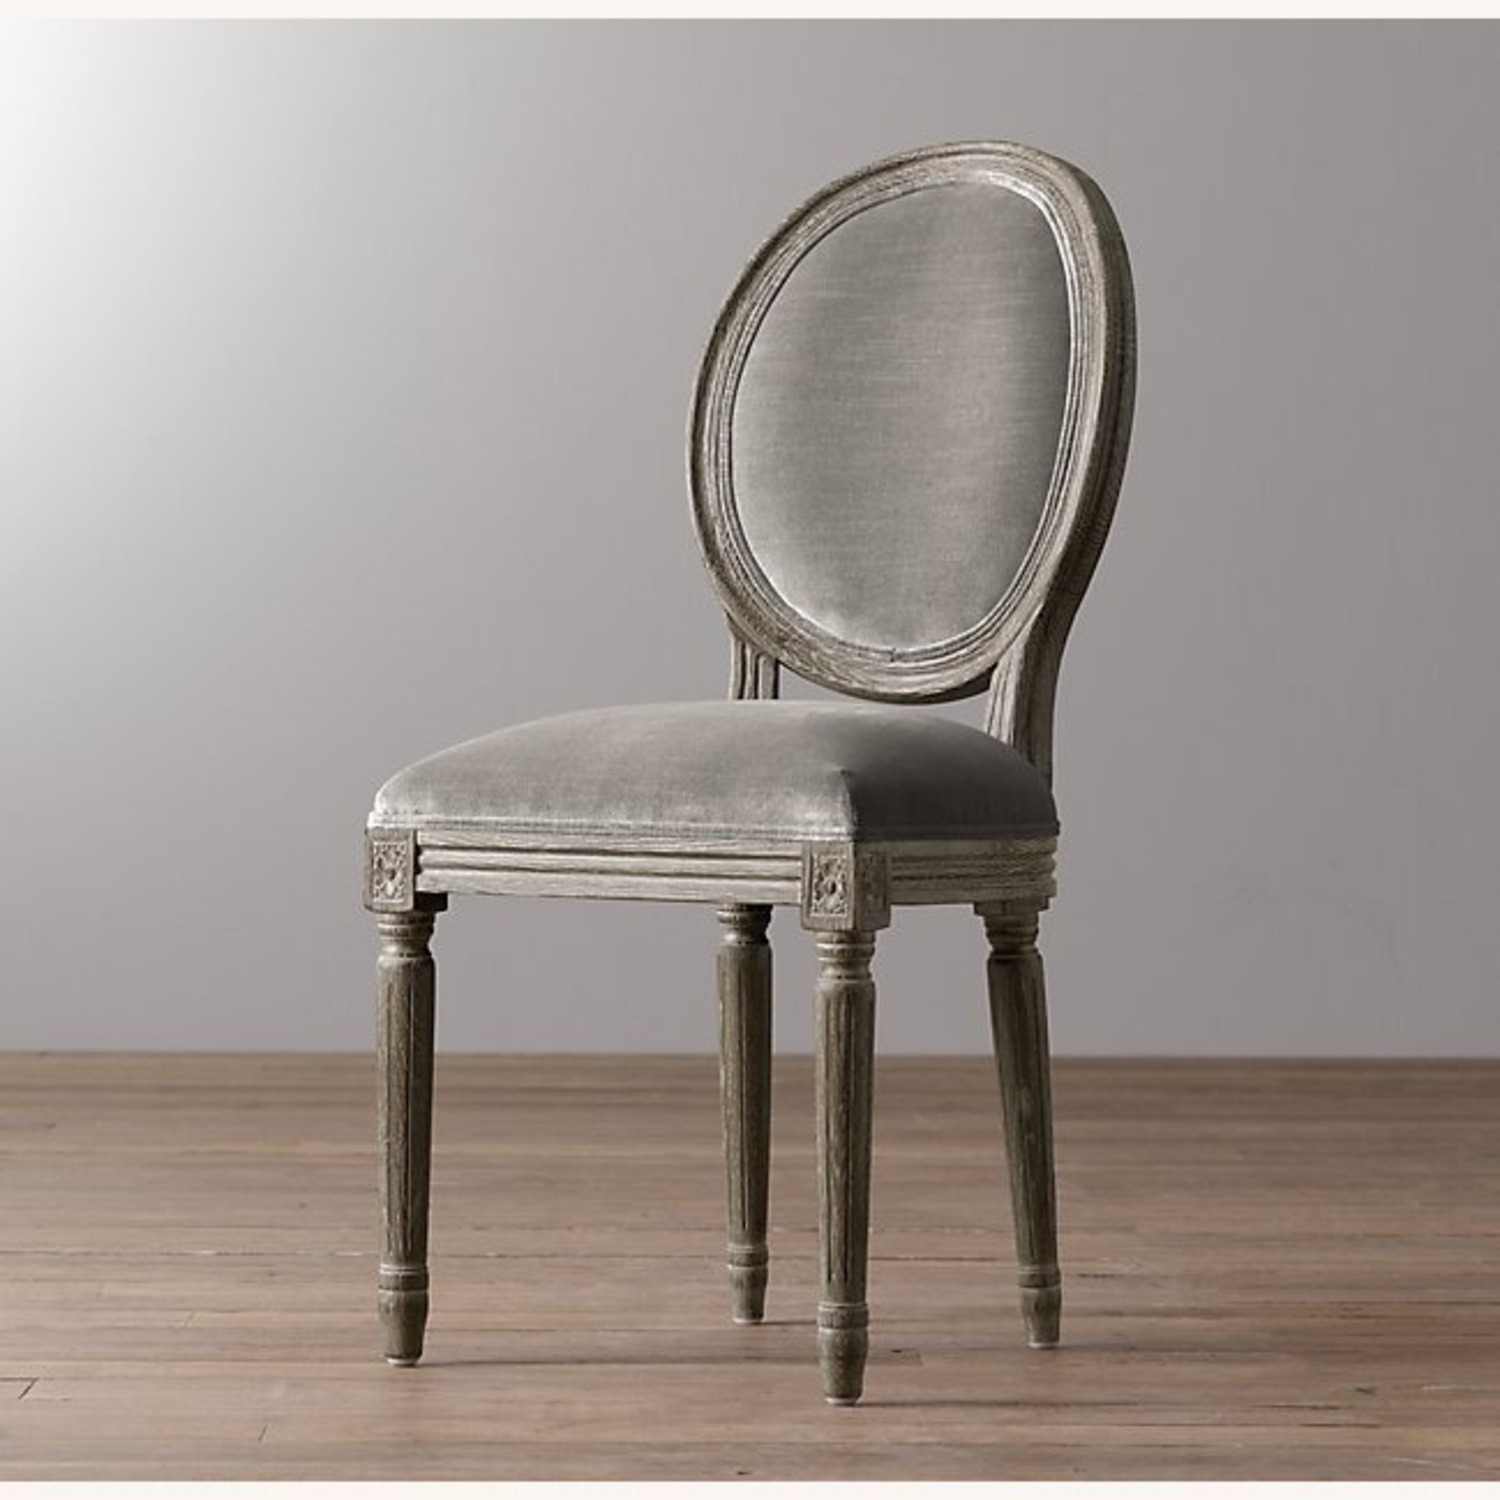 Restoration Hardware Mini Vintage French Upholstered Chair - image-4